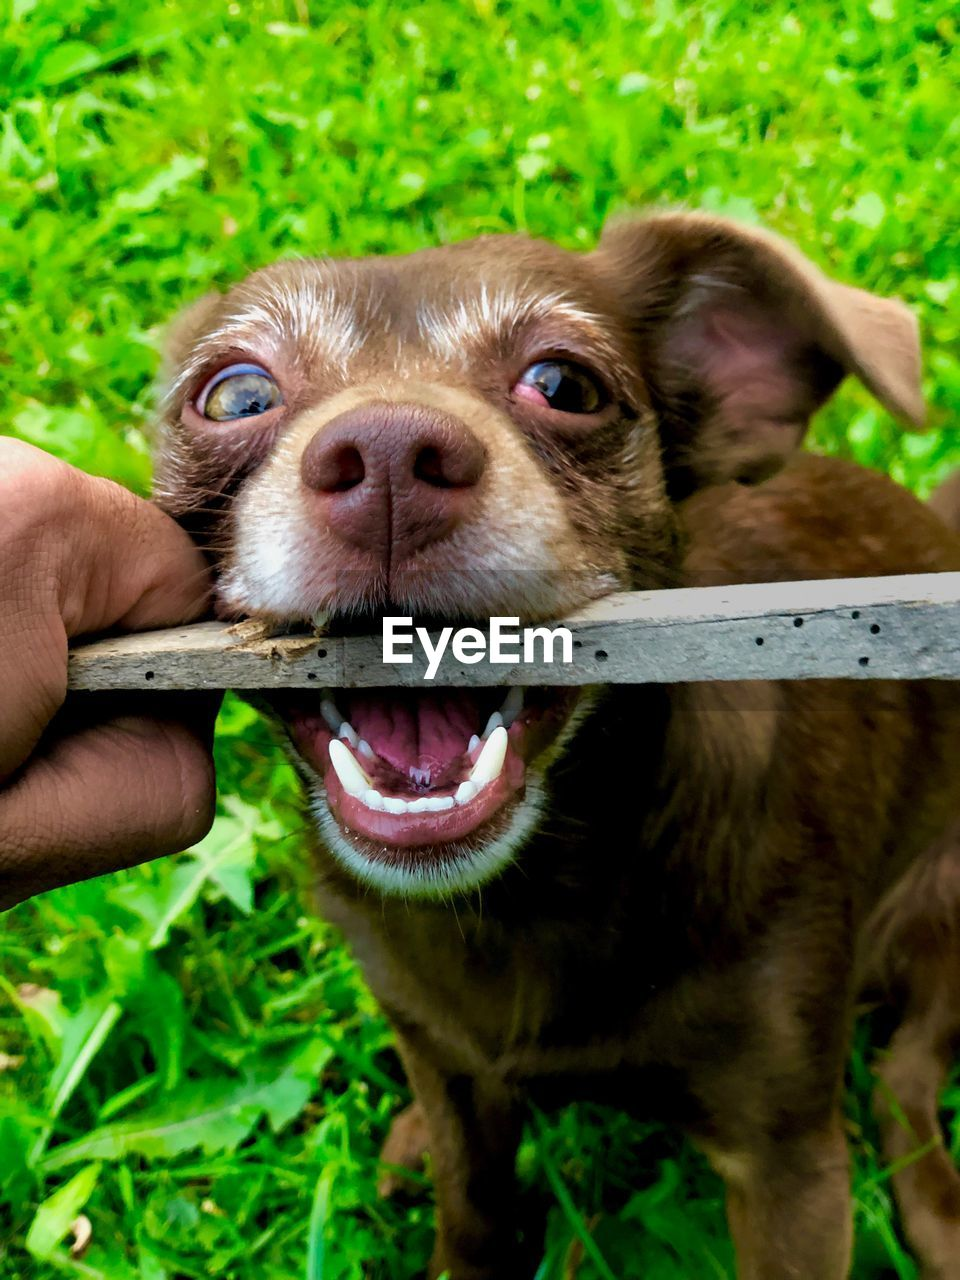 one animal, pets, domestic, mammal, dog, domestic animals, canine, human body part, human hand, hand, vertebrate, grass, one person, real people, plant, body part, green color, finger, mouth open, pet owner